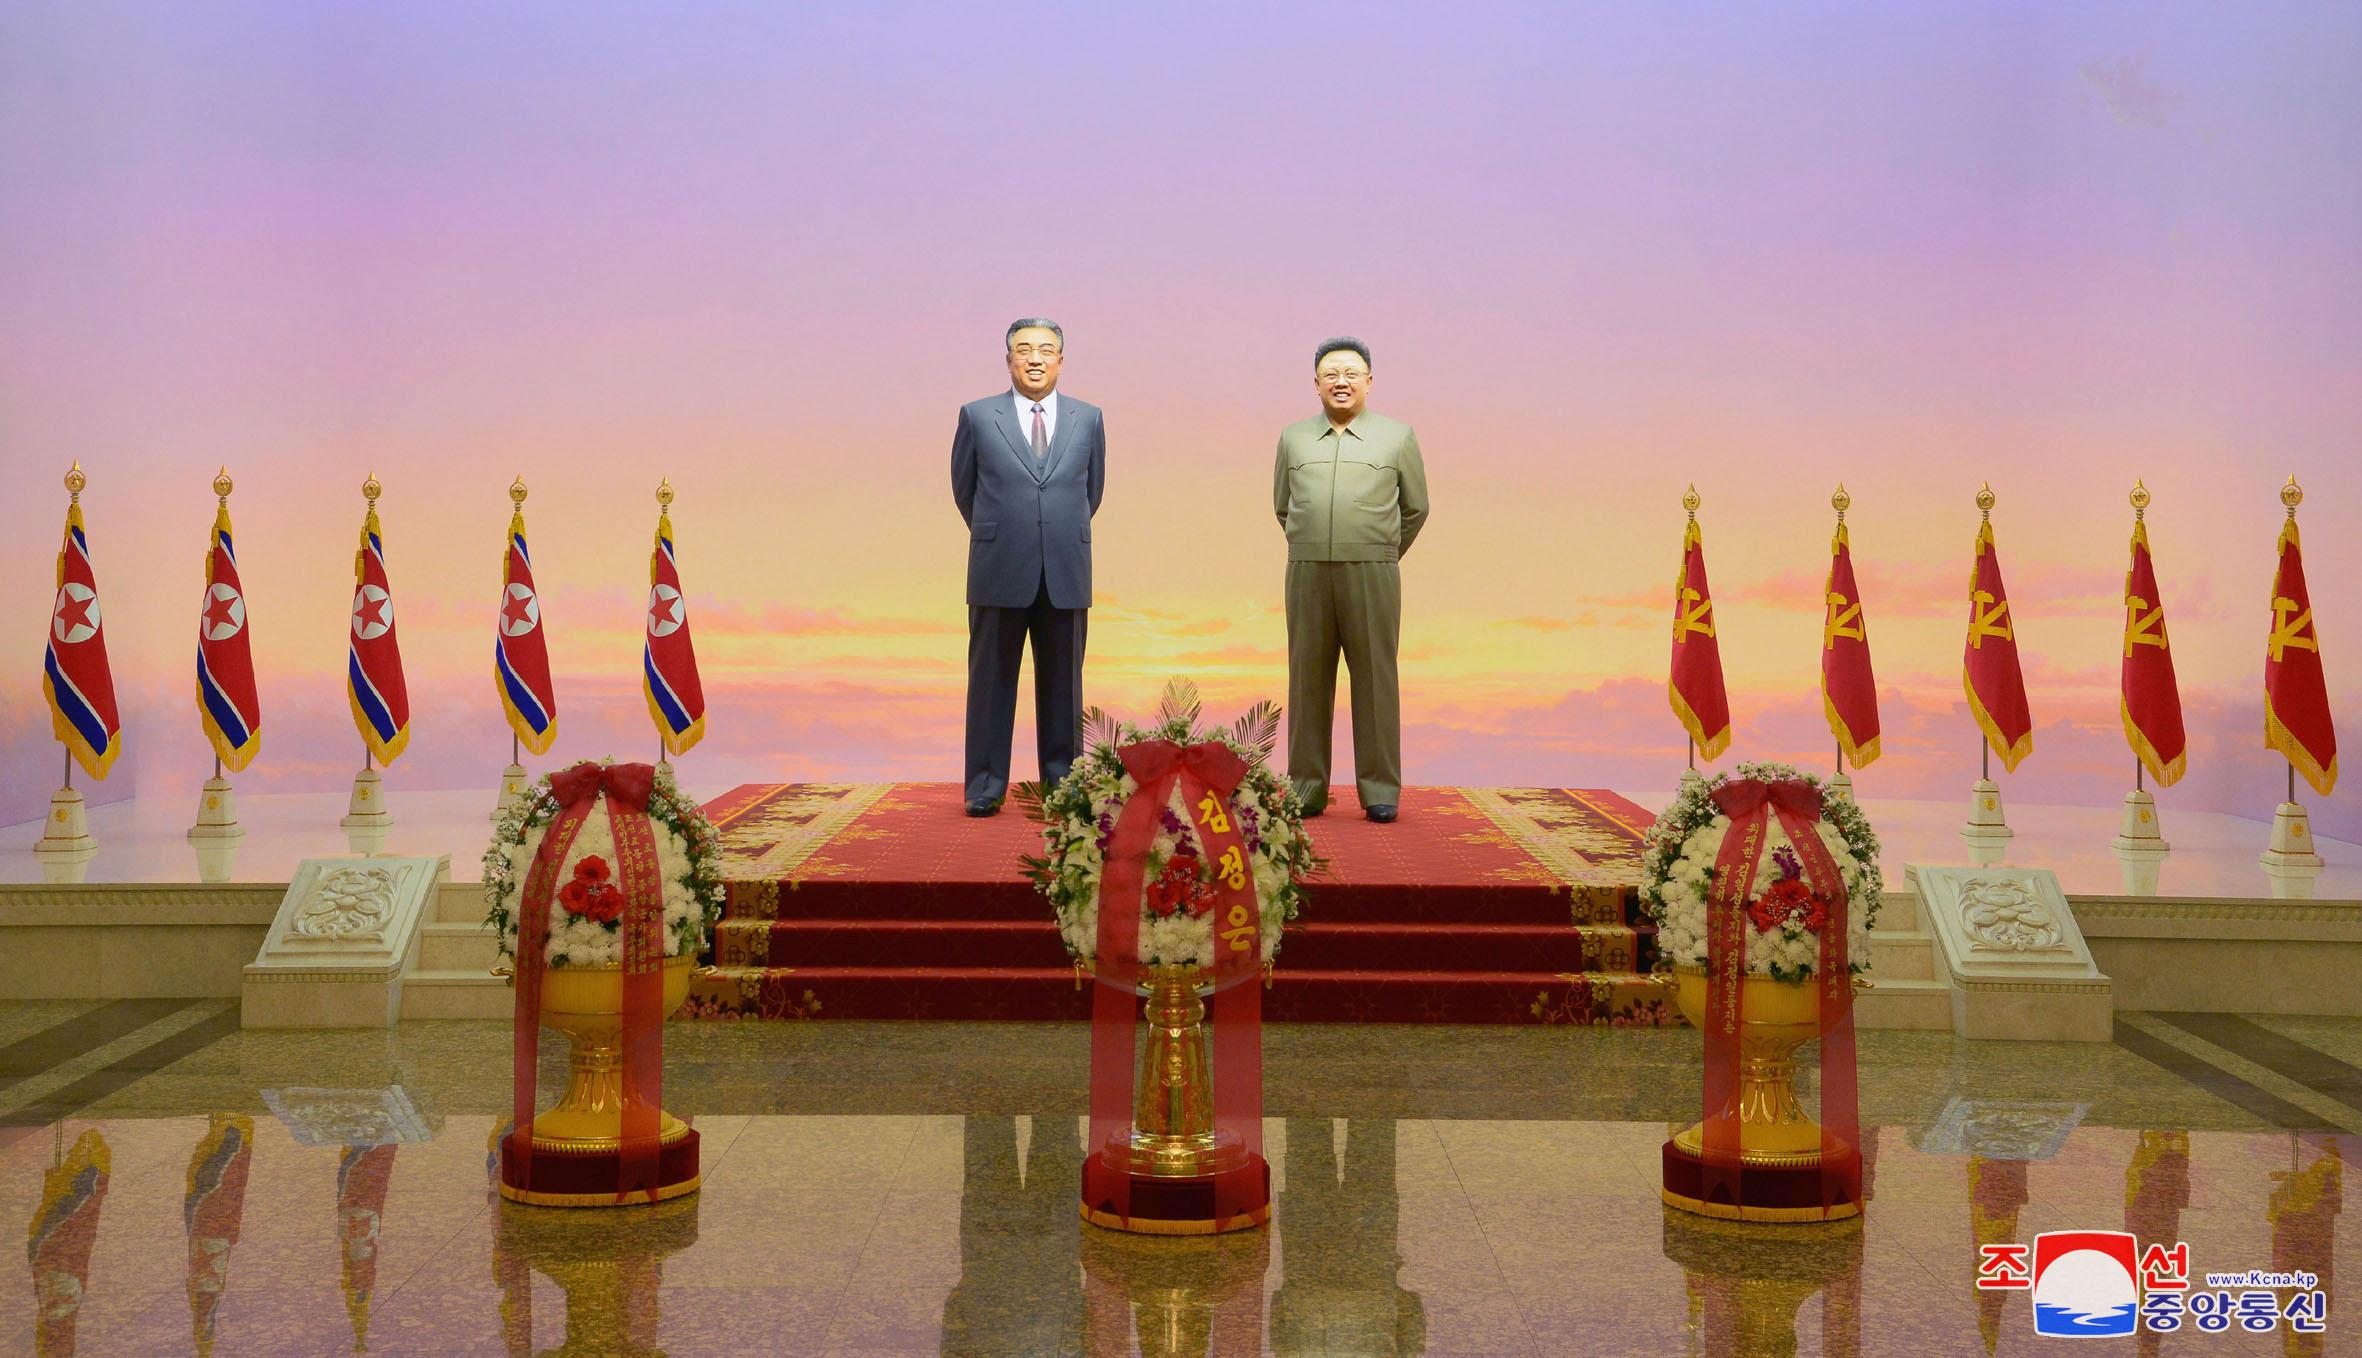 The statues of Kim Il Sung and Kim Jong Il are seen during a ceremony to mark the 7th death anniversary of late North Korean leader Kim Jong Il at Kumsusan Palace of the Sun in Pyongyang, North Korea December 17, 2018 released by North Korea's Korean Central News Agency (KCNA).   KCNA via REUTERS    ATTENTION EDITORS - THIS IMAGE WAS PROVIDED BY A THIRD PARTY. REUTERS IS UNABLE TO INDEPENDENTLY VERIFY THIS IMAGE. NO THIRD PARTY SALES. SOUTH KOREA OUT. NO COMMERCIAL OR EDITORIAL SALES IN SOUTH KOREA.